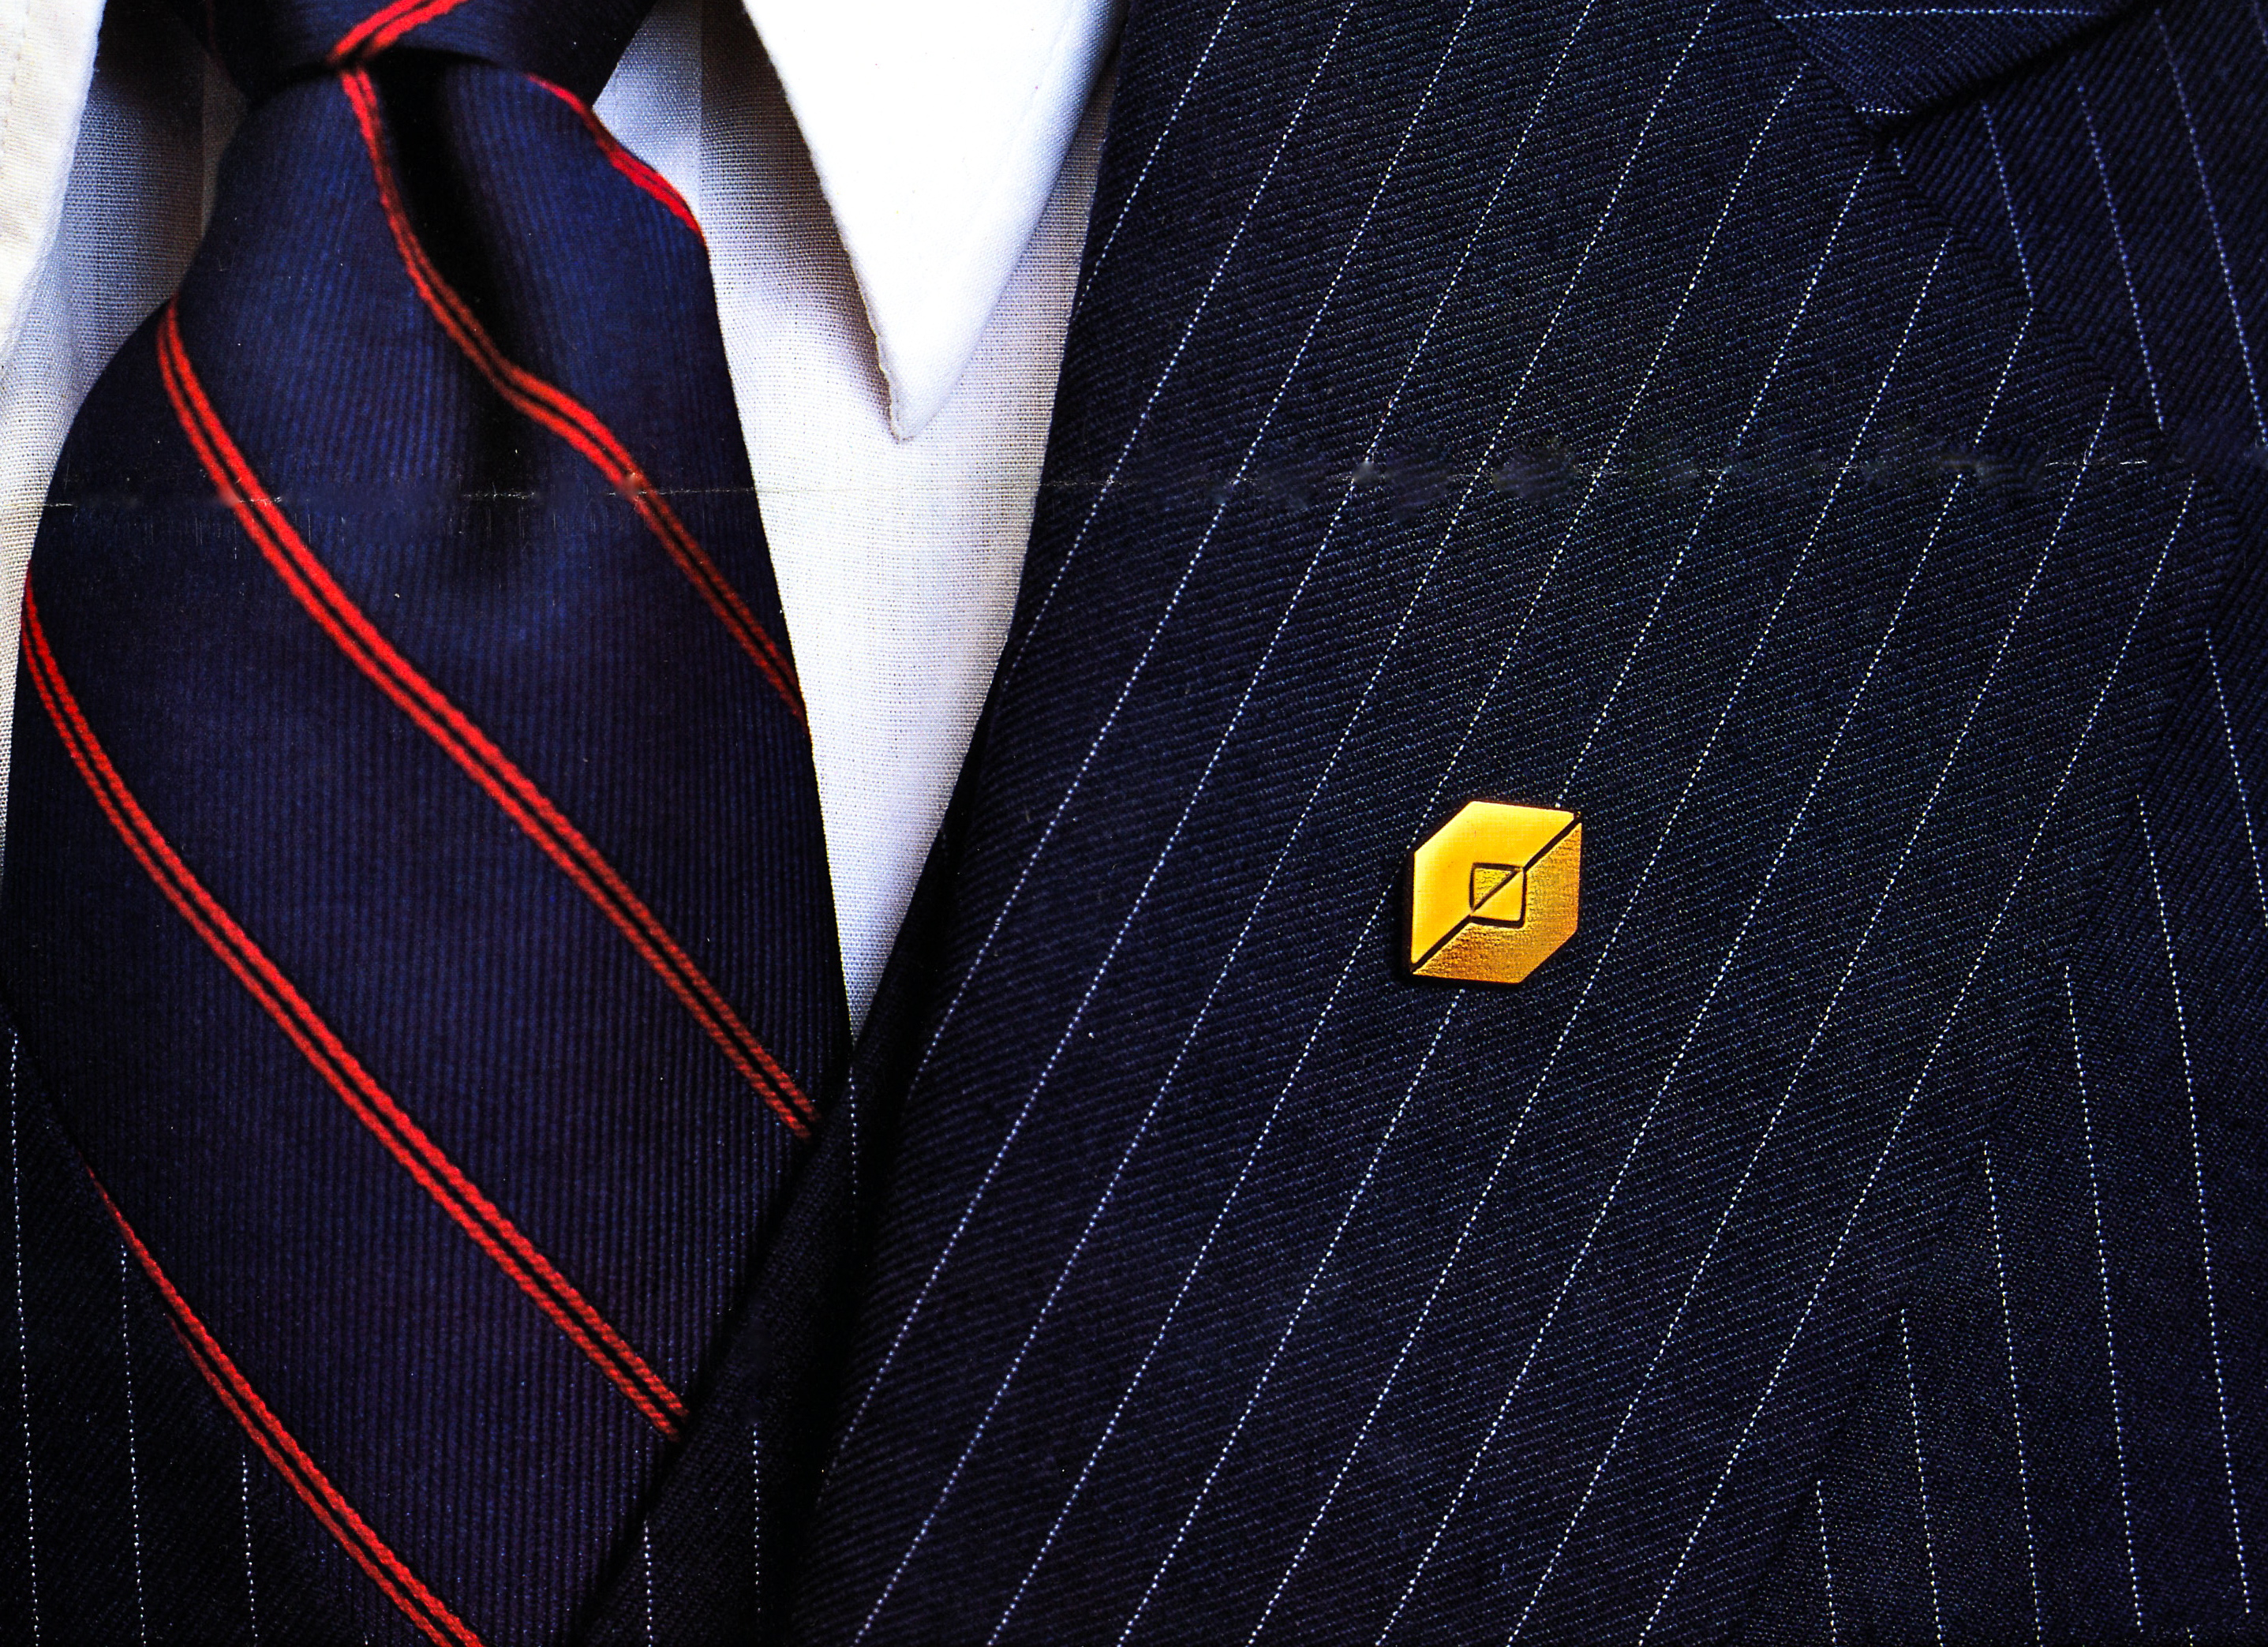 The new Fidelity logo as a gold pot metal lapel pin attached to the lapel of a suit.